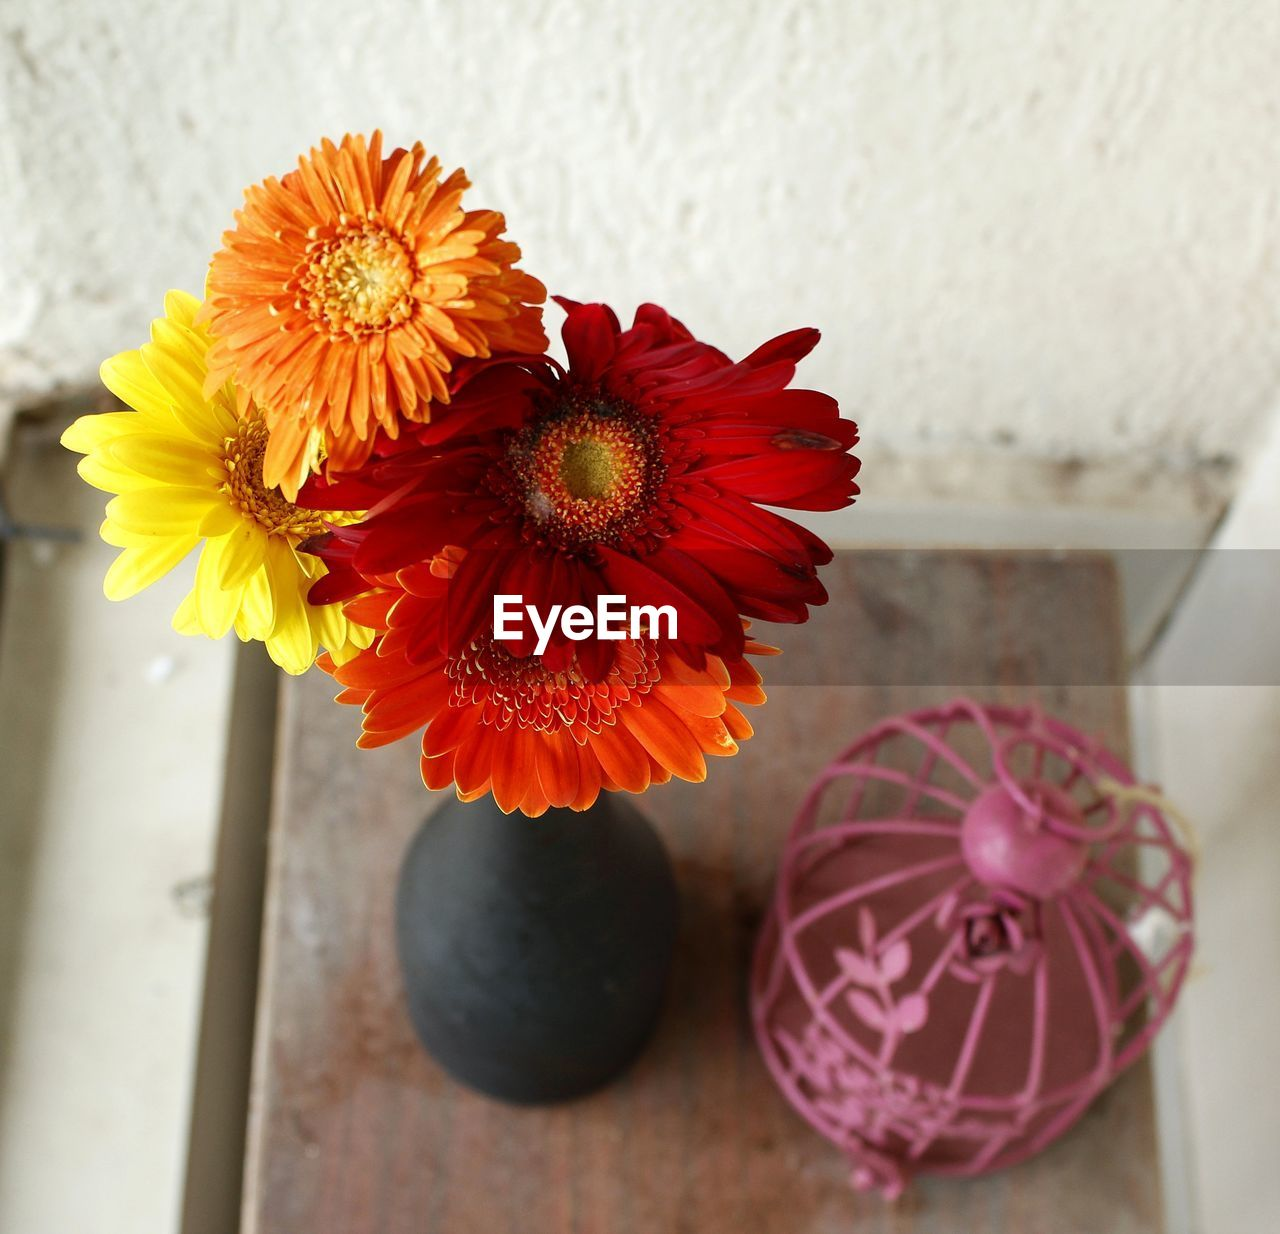 flower, flowering plant, freshness, vulnerability, fragility, petal, close-up, beauty in nature, plant, flower head, inflorescence, vase, no people, indoors, nature, growth, decoration, focus on foreground, red, gerbera daisy, pollen, flower arrangement